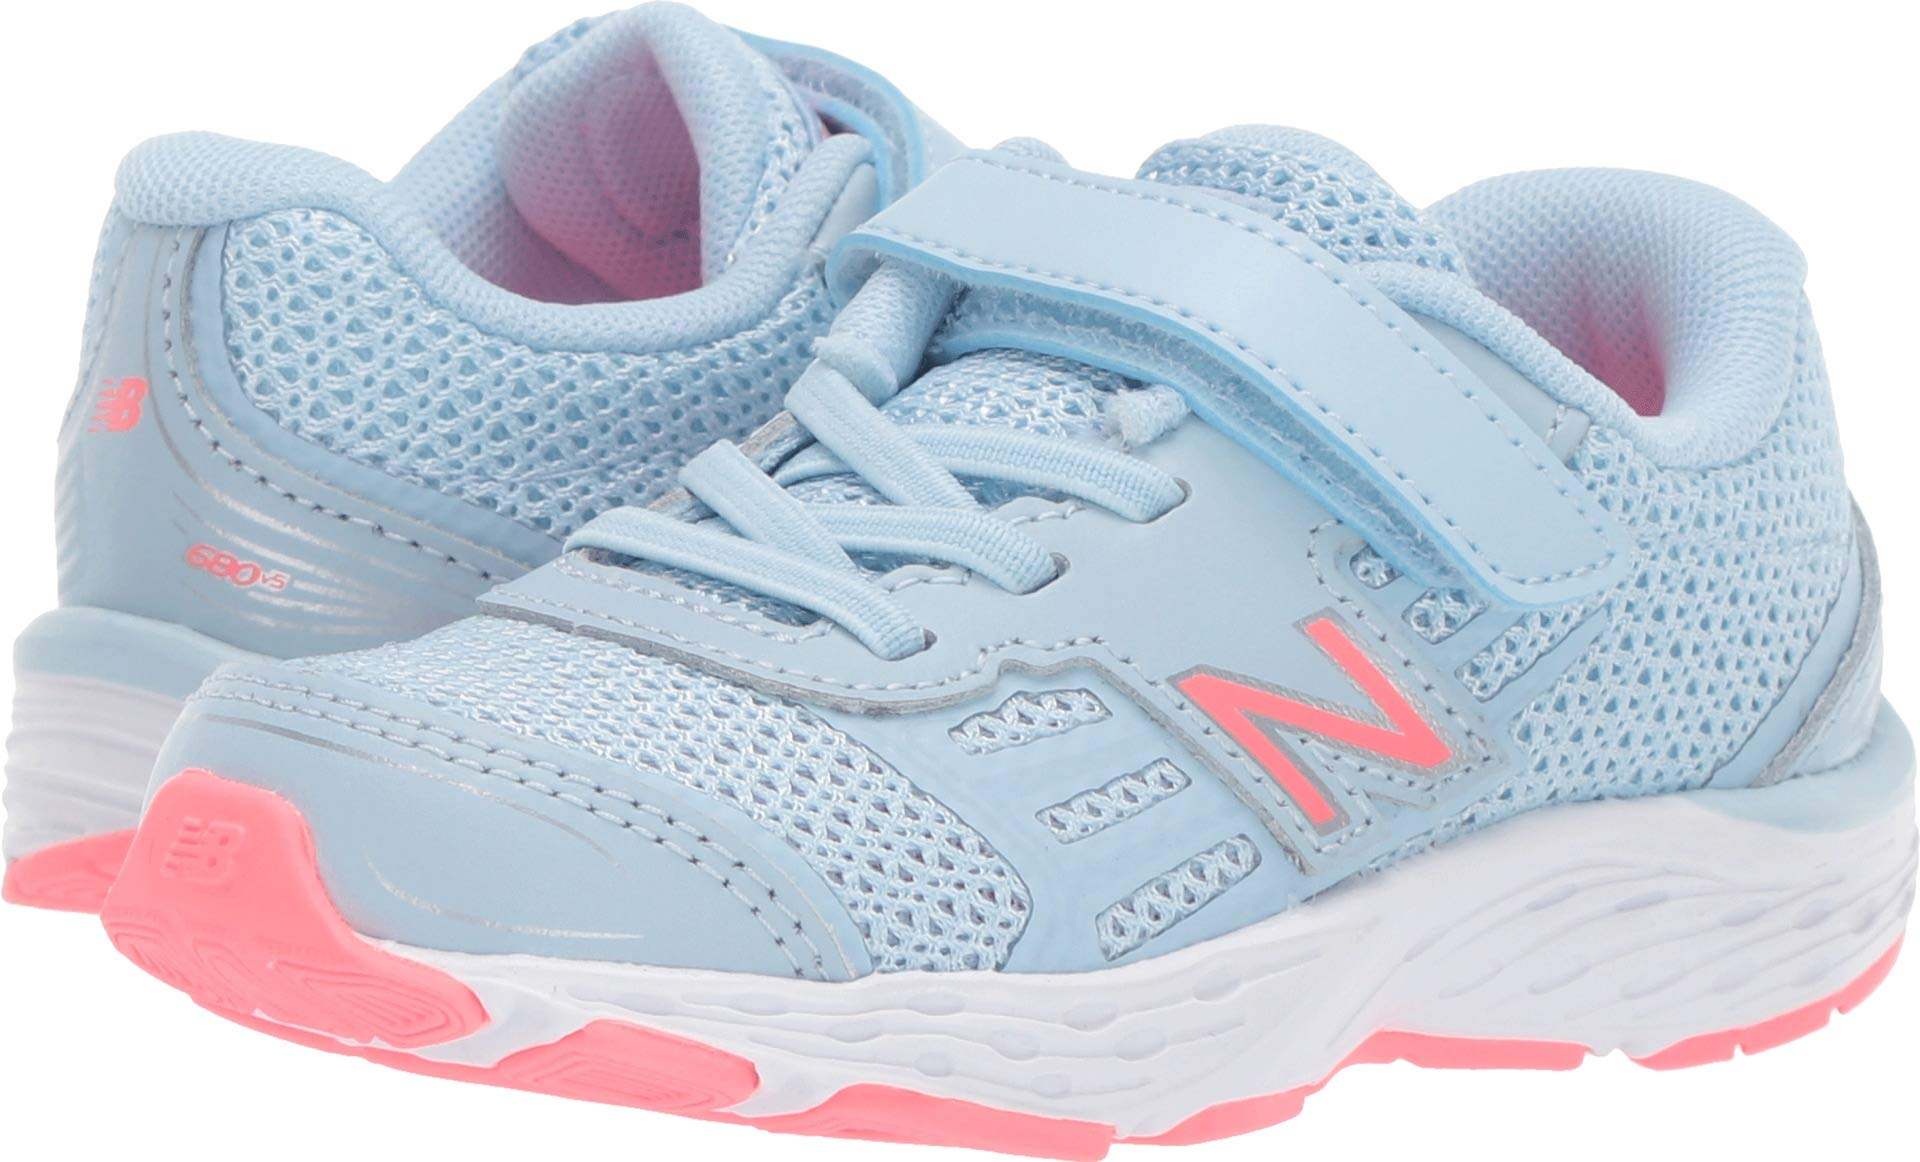 New Balance Girls' 680v5 Hook and Loop Running Shoe air/Guava 8 M US Toddler